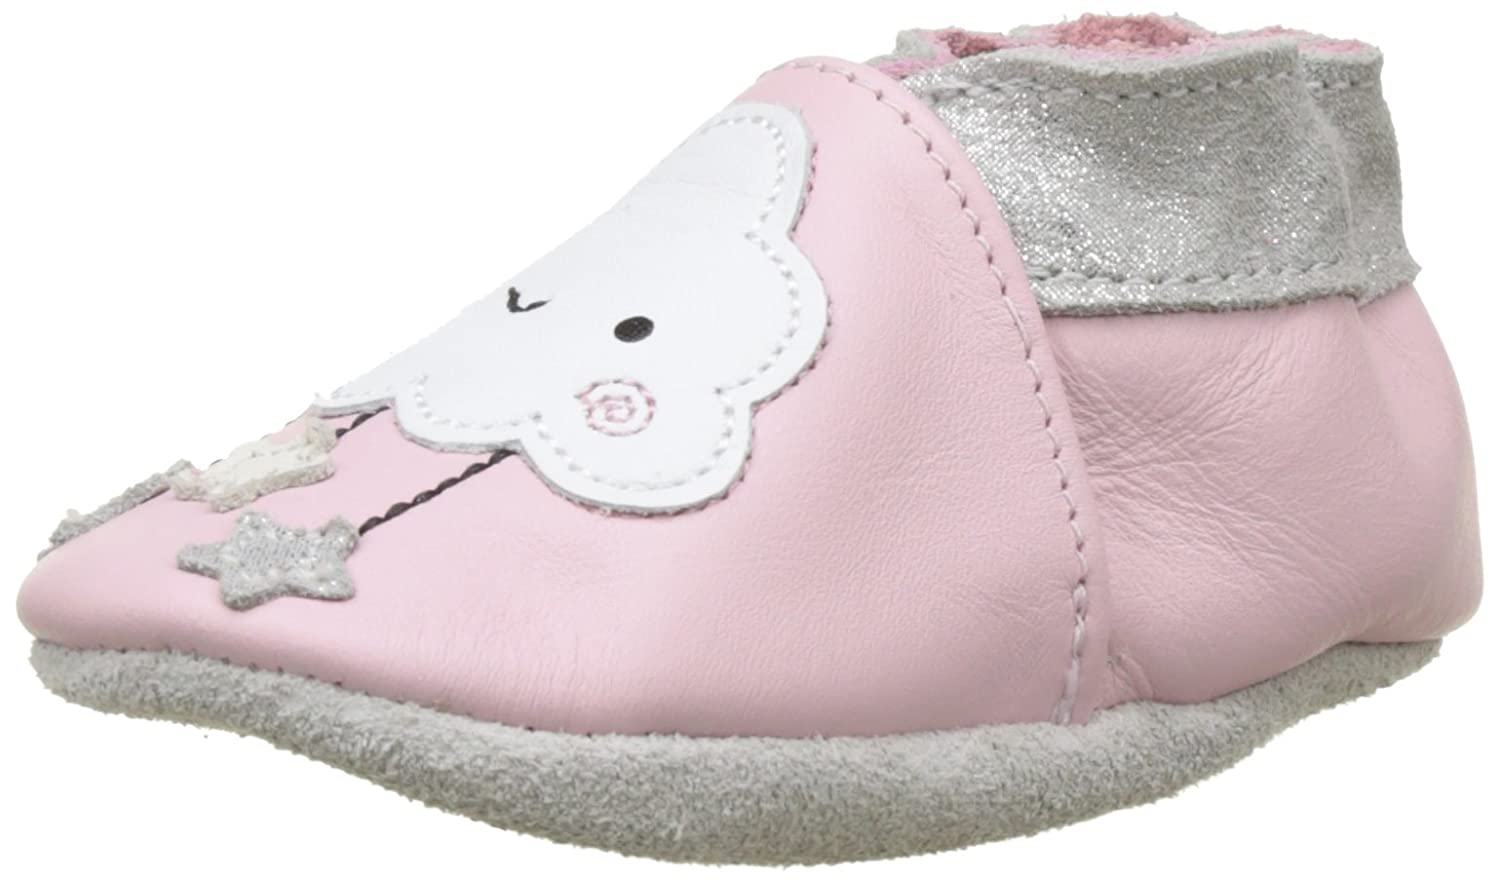 c6848065c13a7 Robeez Baby Girls  Miss Cloud Baby Shoes Pink Size  12-18 moisUK ...